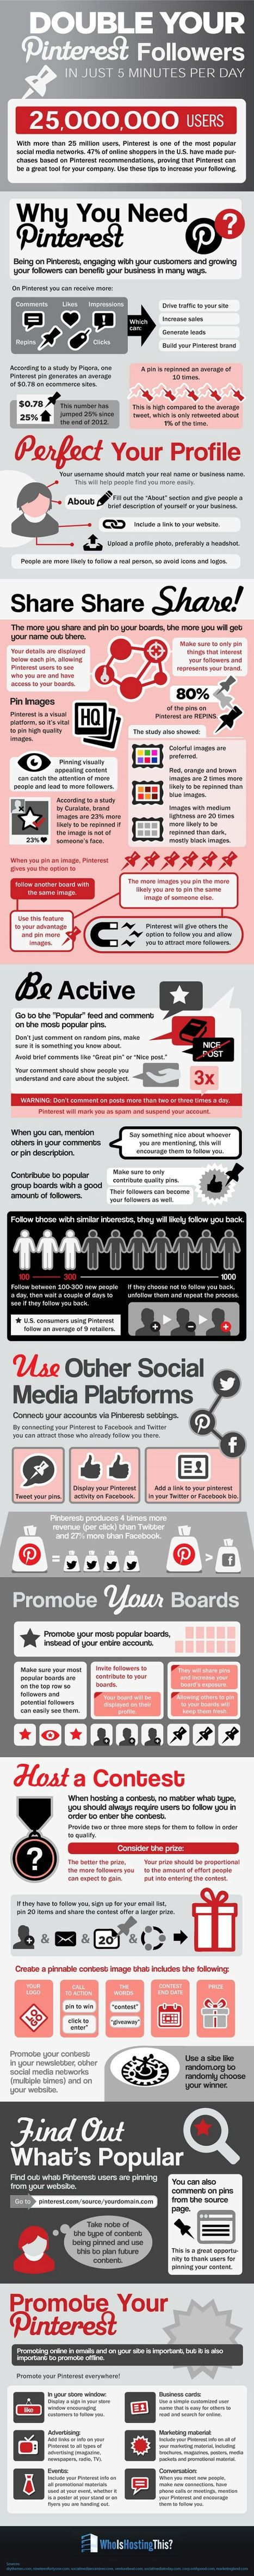 Double Your Pinterest Followers in Just Five Minutes per Day #Infographic | digital marketing strategy | Scoop.it